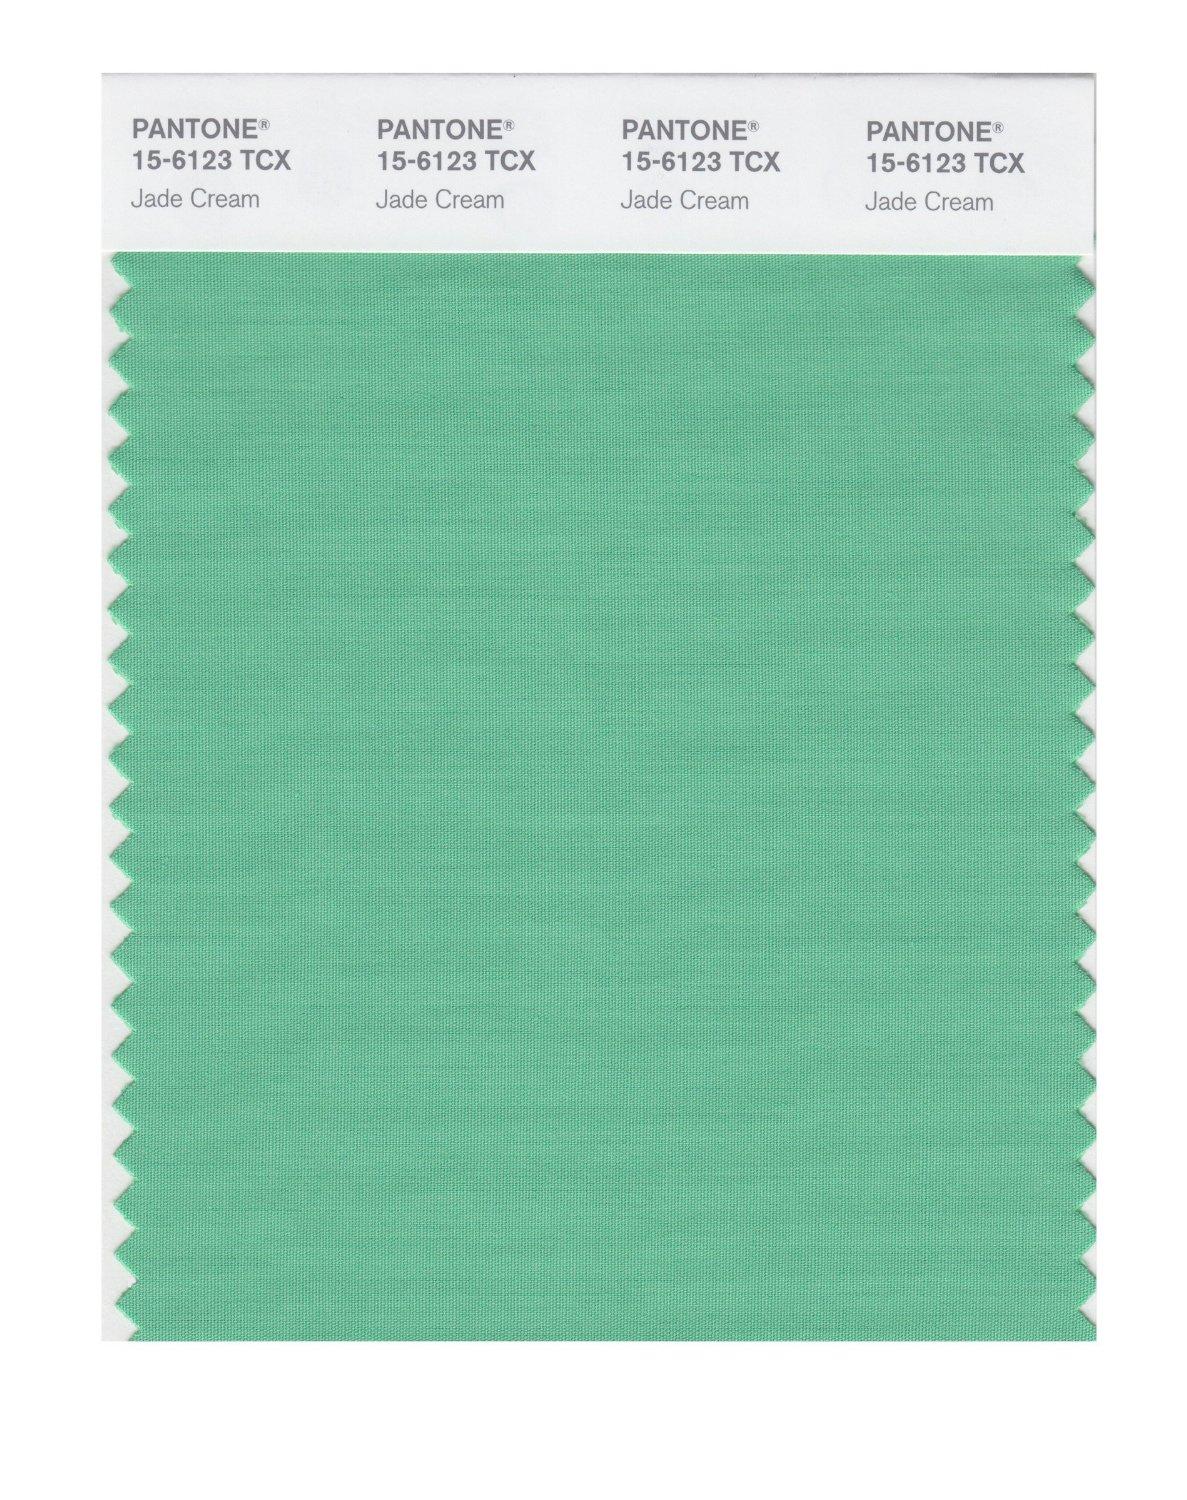 Pantone Smart Swatch 15-6123 Jade Cream